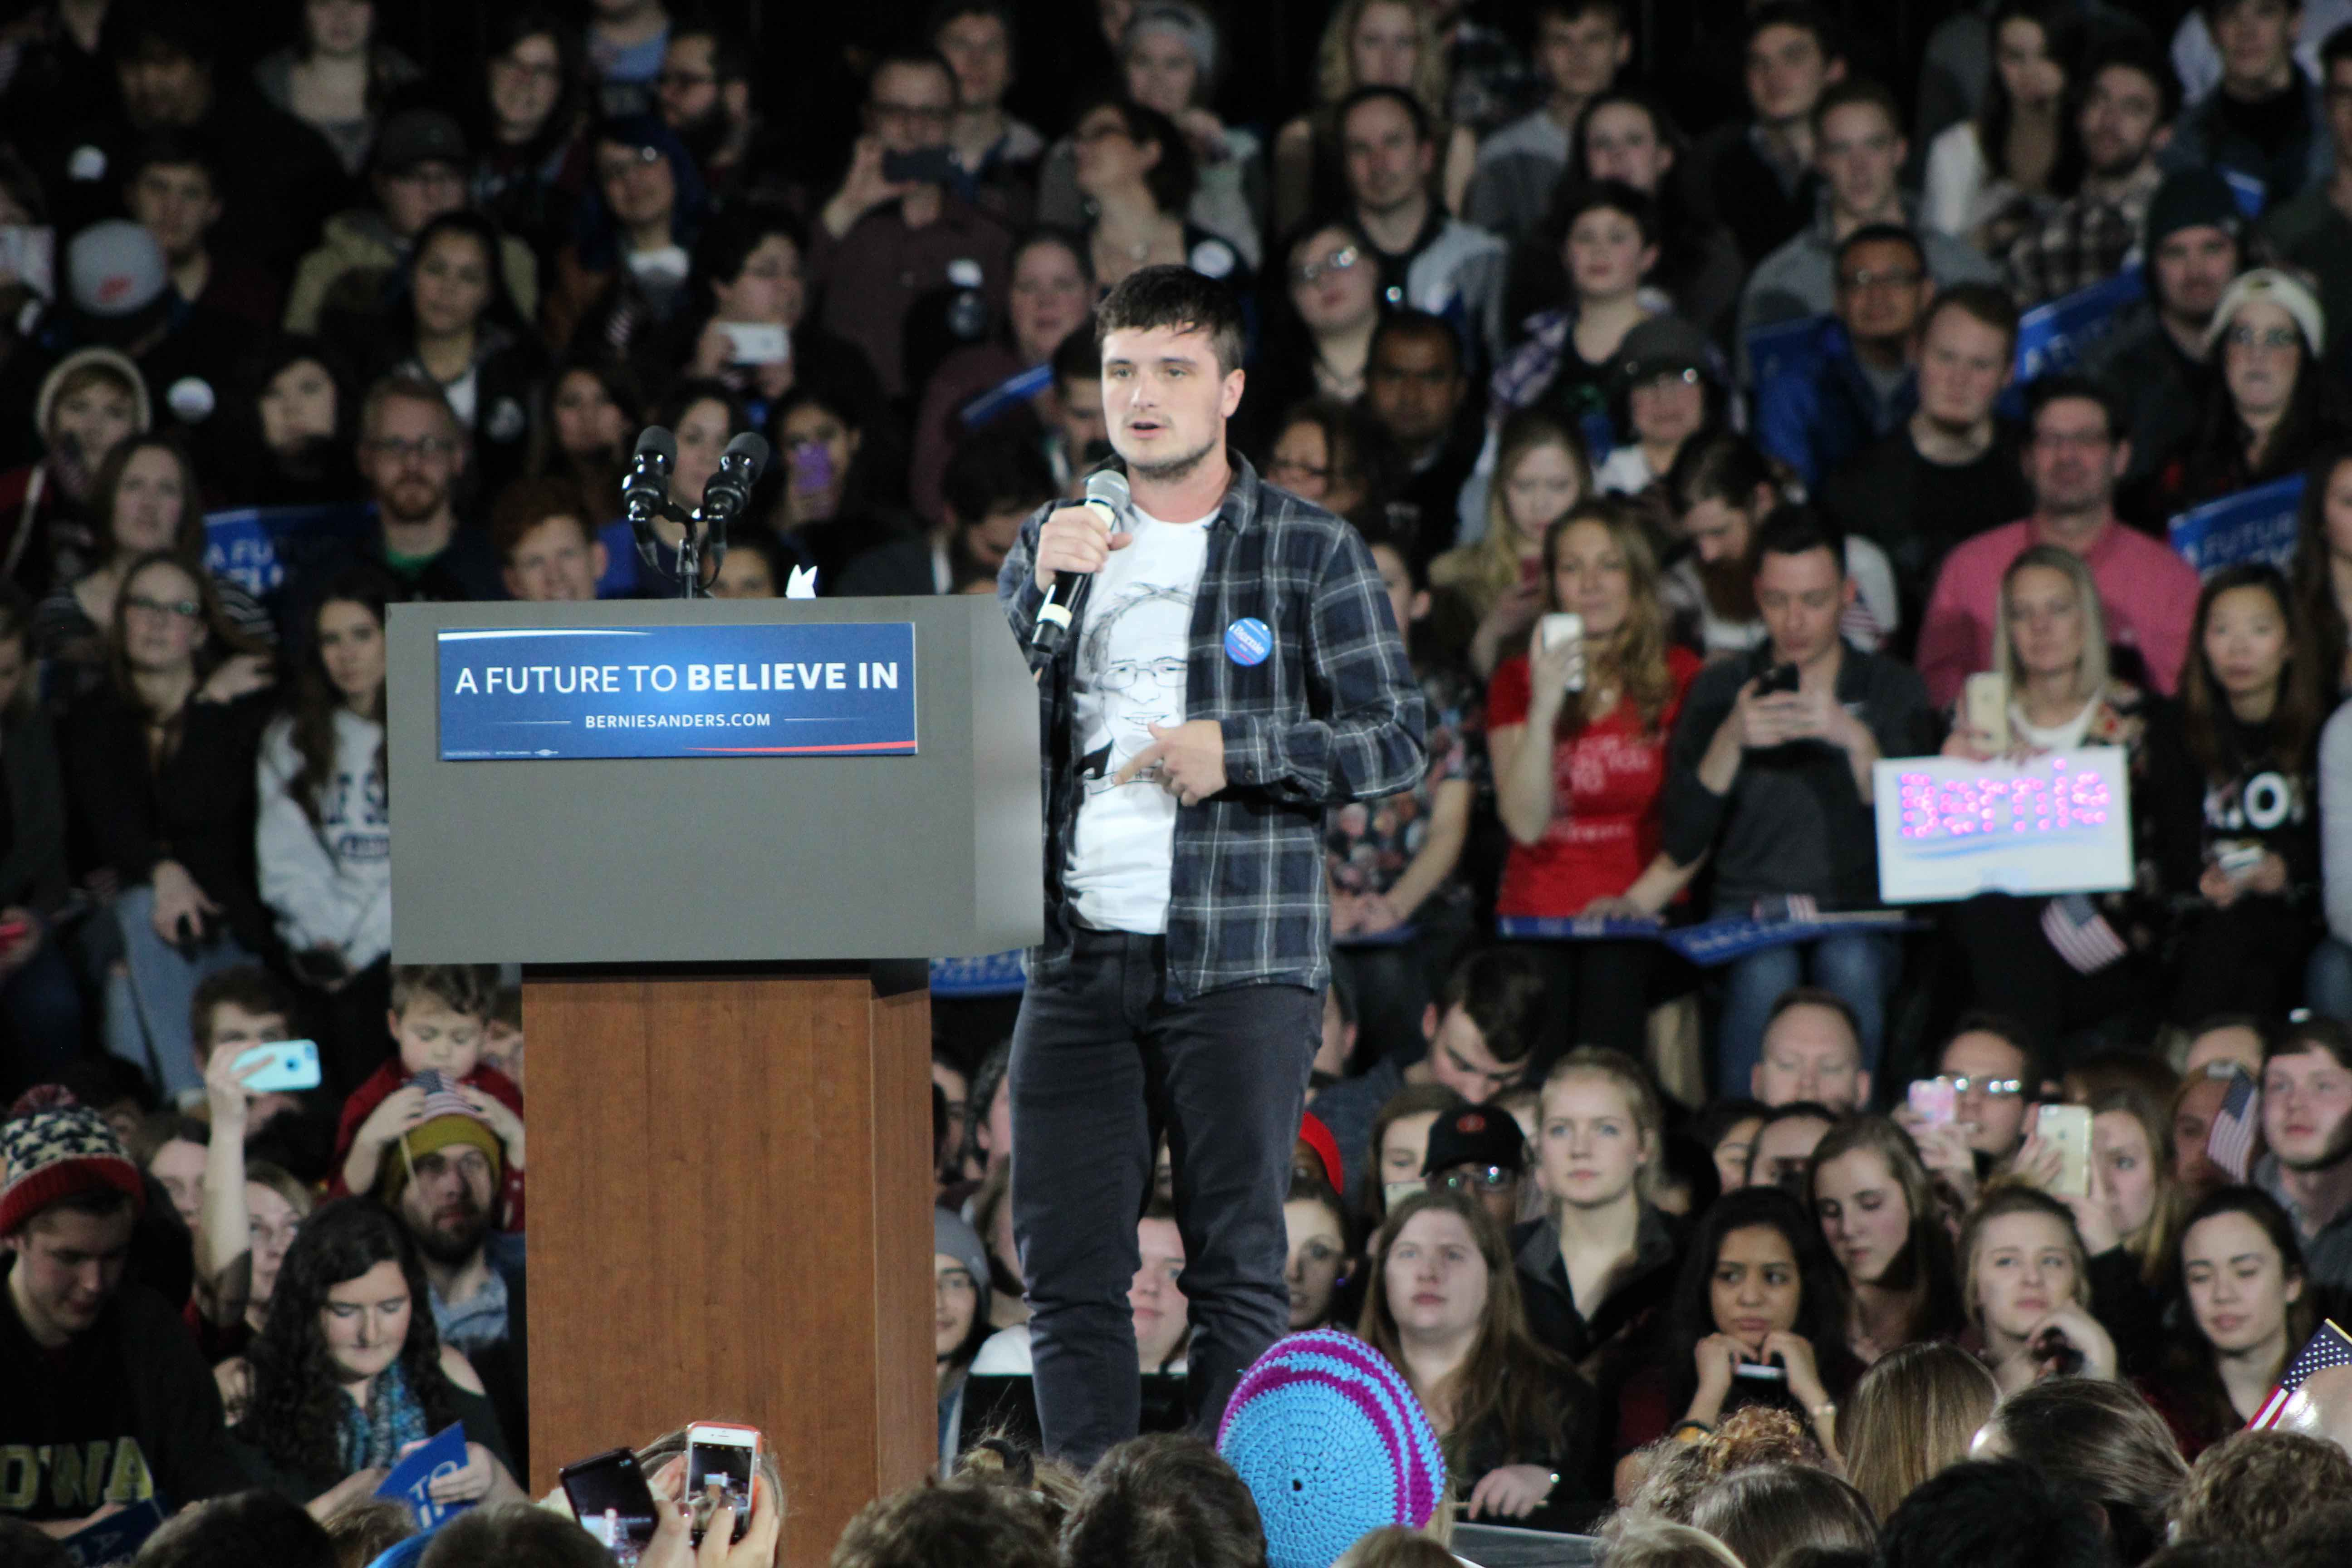 Actor Josh Hutcherson Best Know For His Role In The Hunger Games Appeared At Jan 30 Rally To Show Support Bernie Sanders